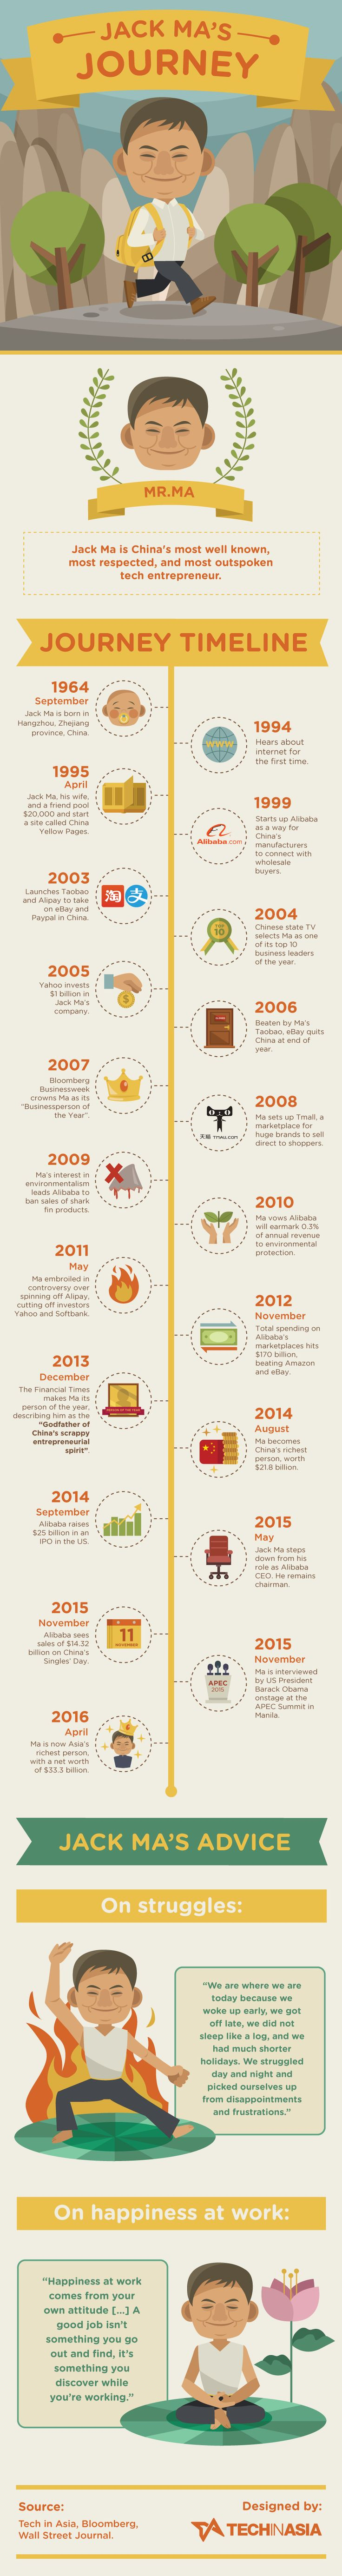 Jack Ma's journey - INFOGRAPHIC